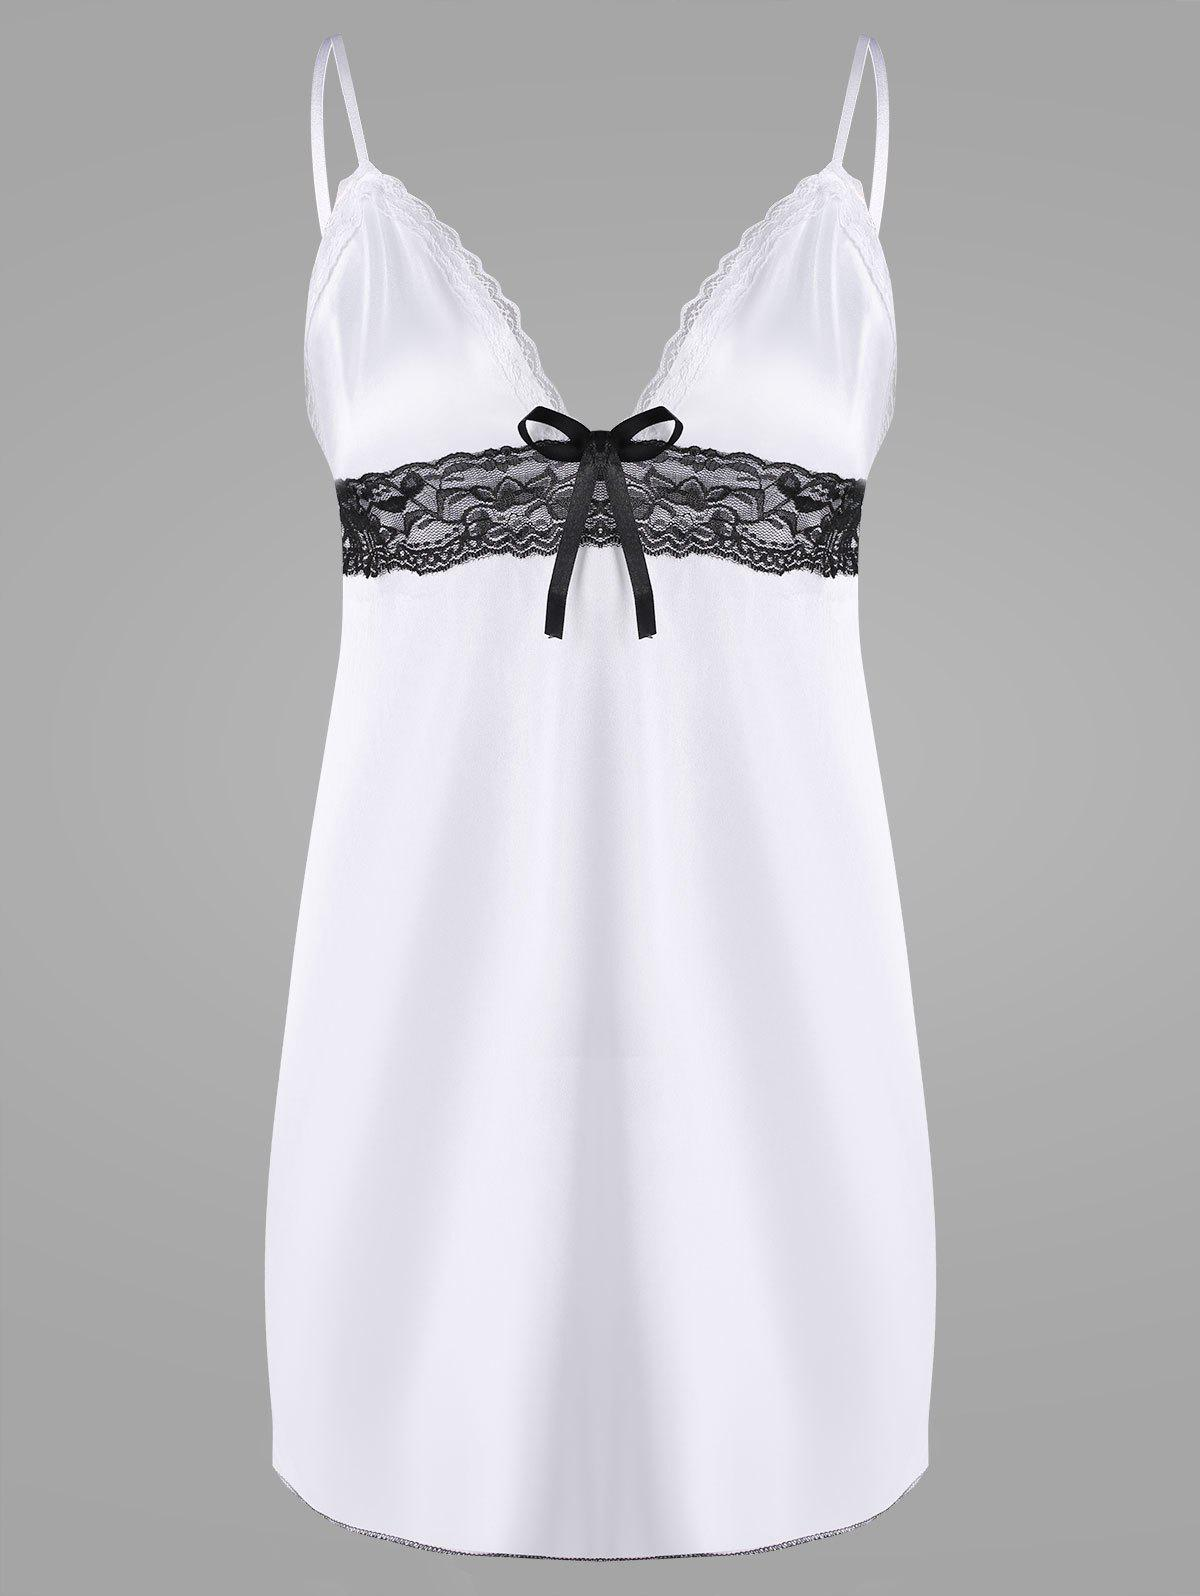 Slip Lace Trim Plunge BabydollWOMEN<br><br>Size: ONE SIZE; Color: WHITE; Material: Polyester; Pattern Type: Others; Embellishment: Lace; Weight: 0.1200kg; Package Contents: 1 x Babydoll  1 x T Back;